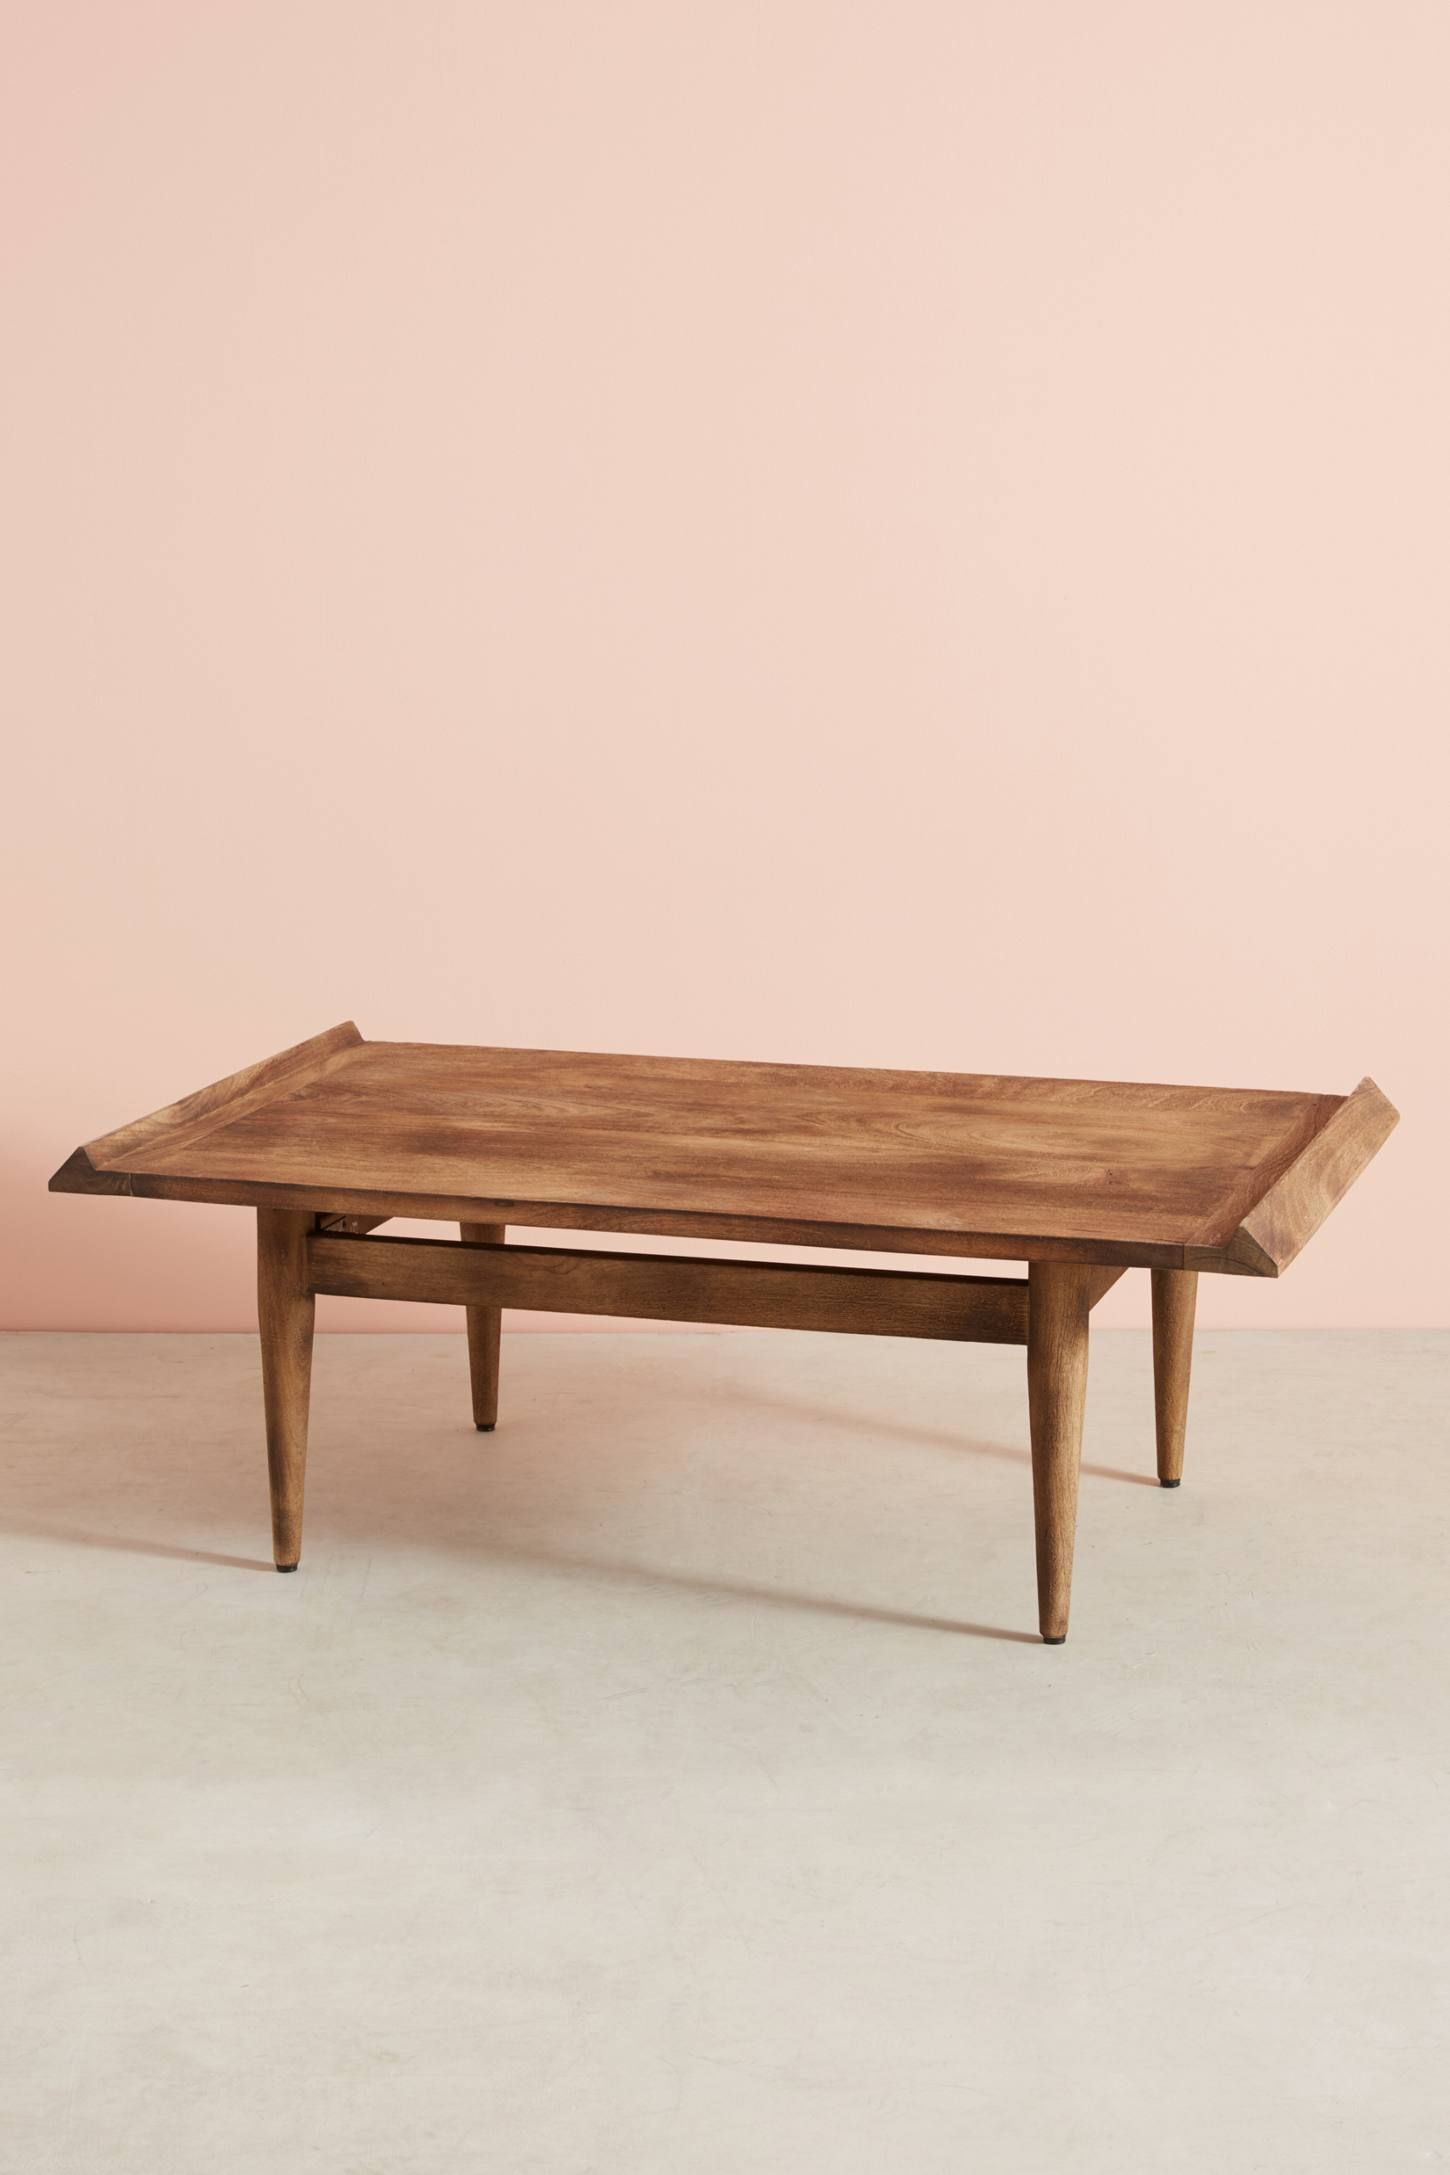 Burnished Wood Coffee Table Cool Coffee Tables Coffee Table Wood Coffee Table [ 2175 x 1450 Pixel ]